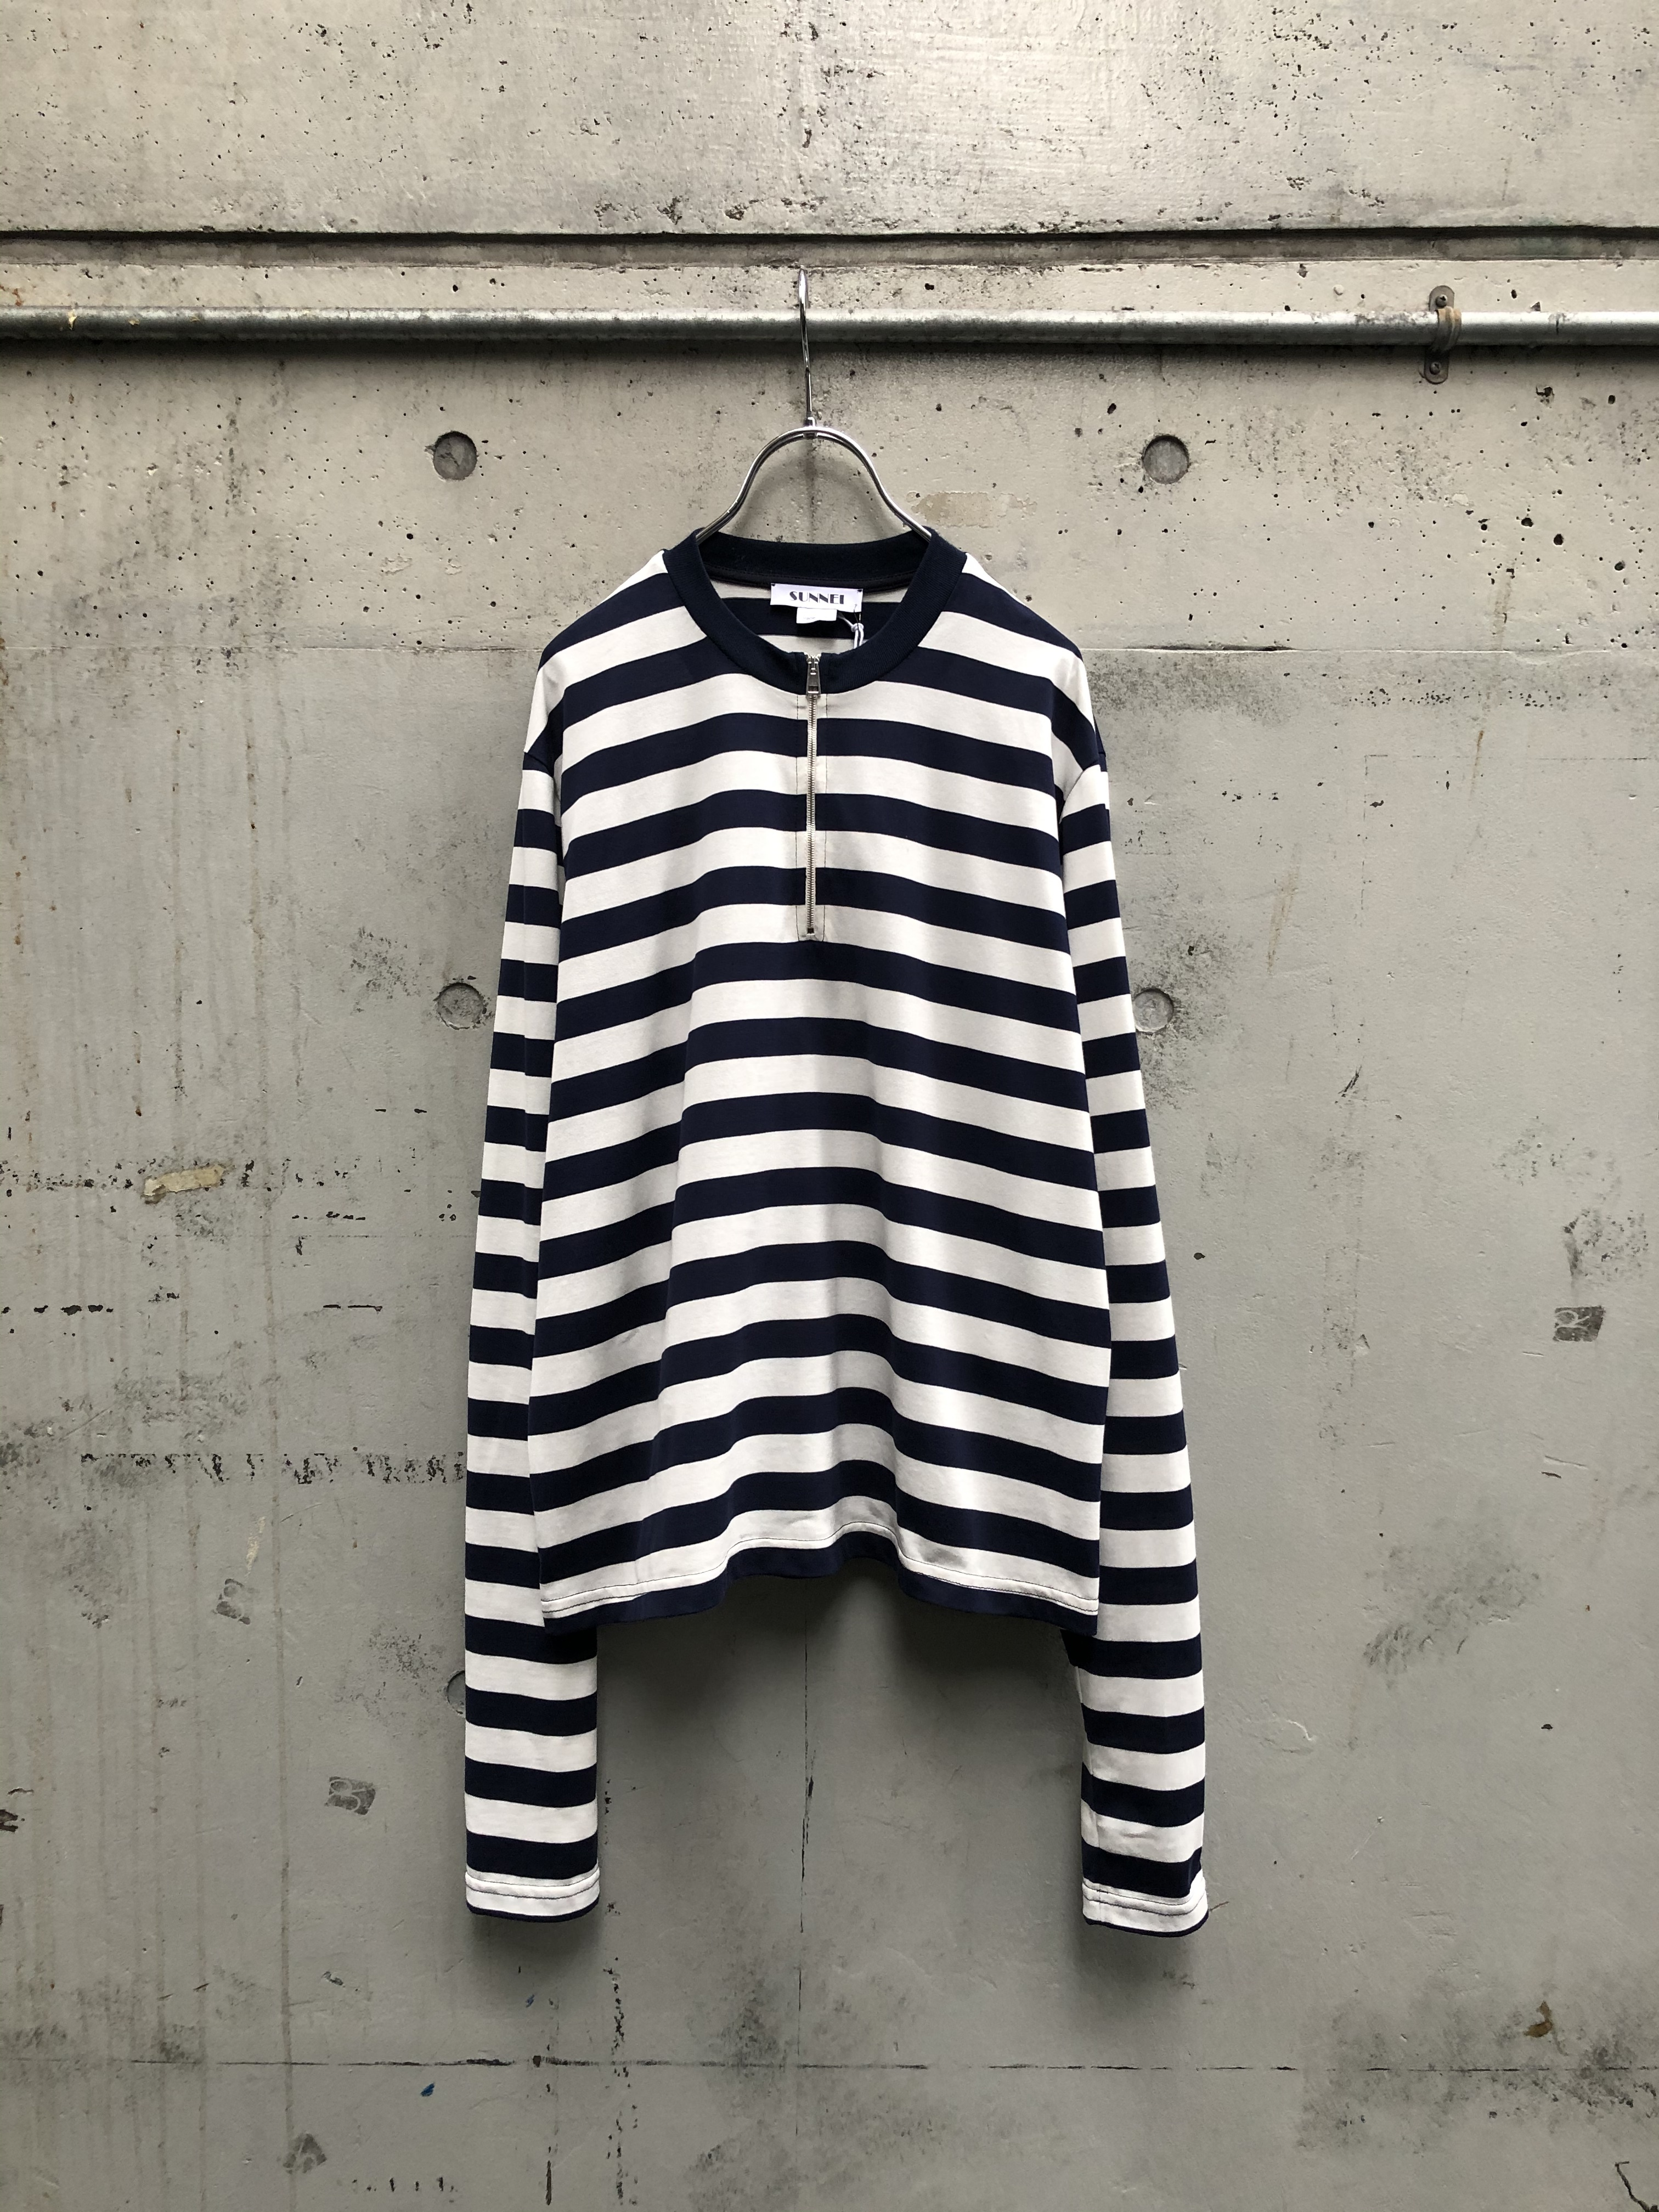 『SUNNEI』STRIPED LONG SLEEVE T-SHIRT